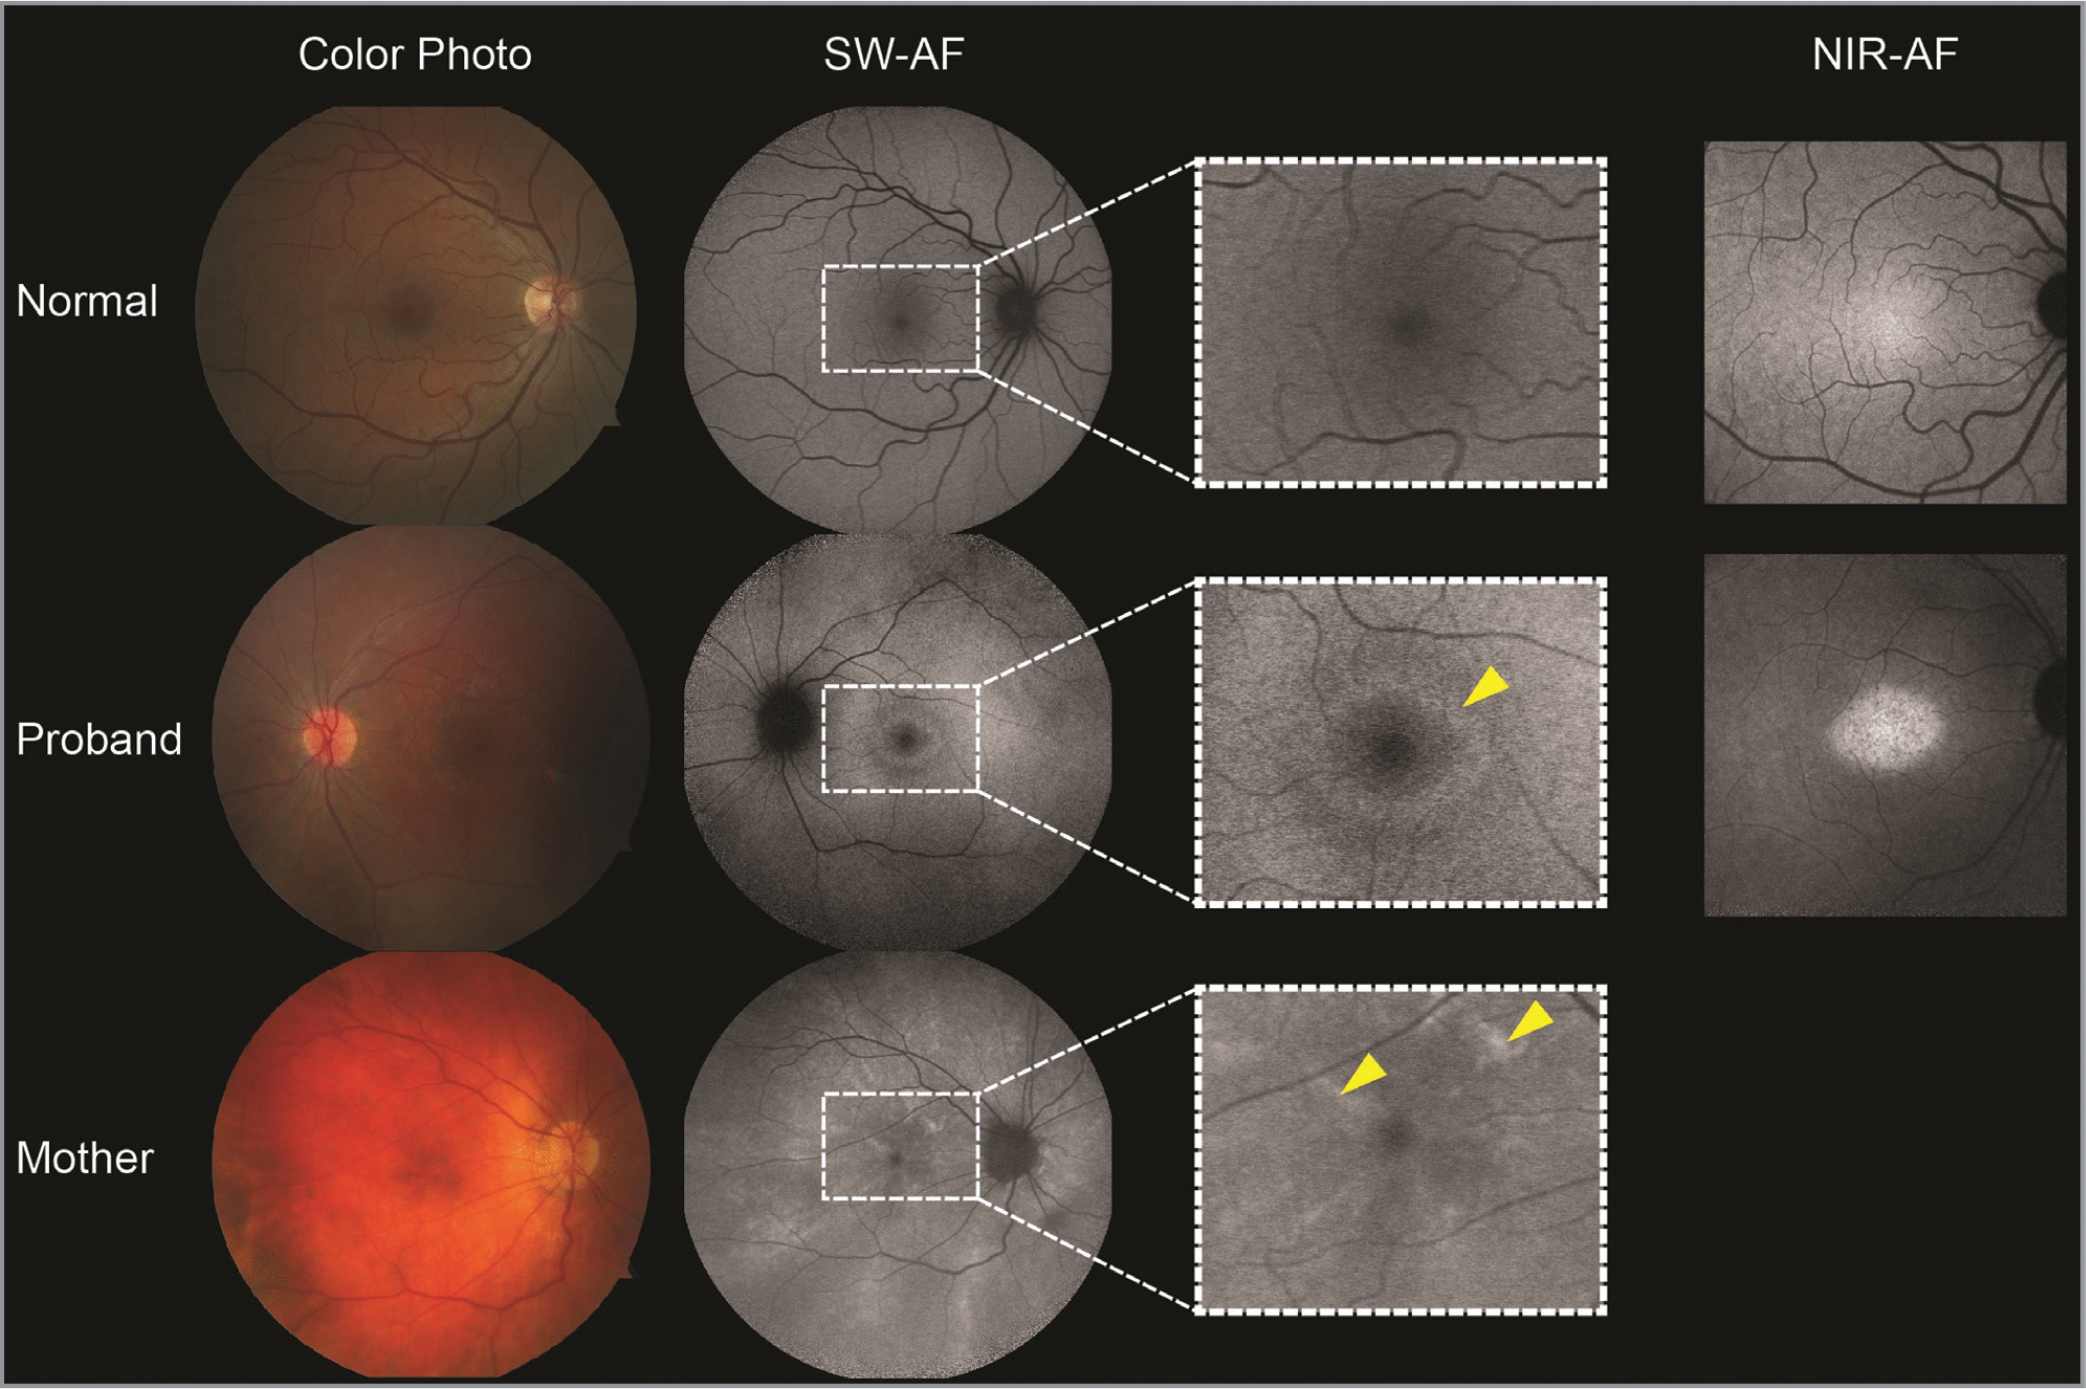 Multimodal imaging of the proband and carrier mother harboring a pathogenic variant in RPGR. A digital color fundus photo (first column), short-wavelength (SW-AF) (second column), and near-IR autofluorescent image (NIR-AF) (last column) are depicted for a healthy young boy (top row), proband (middle row), and carrier mother (last row). The proband shows attenuated arterioles on exam, peripheral retinal pigment epithelium atrophy and a foveal hyperautofluorescent ring (yellow arrow) on SW-AF, and preserved melanization on NIR-AF that is restricted to the area spatially corresponding to within the hyperautofluorescent ring. The carrier mother shows a characteristic tapetal-reflex which is easily seen on SW-AF (yellow arrows) and oriented in a radial pattern.